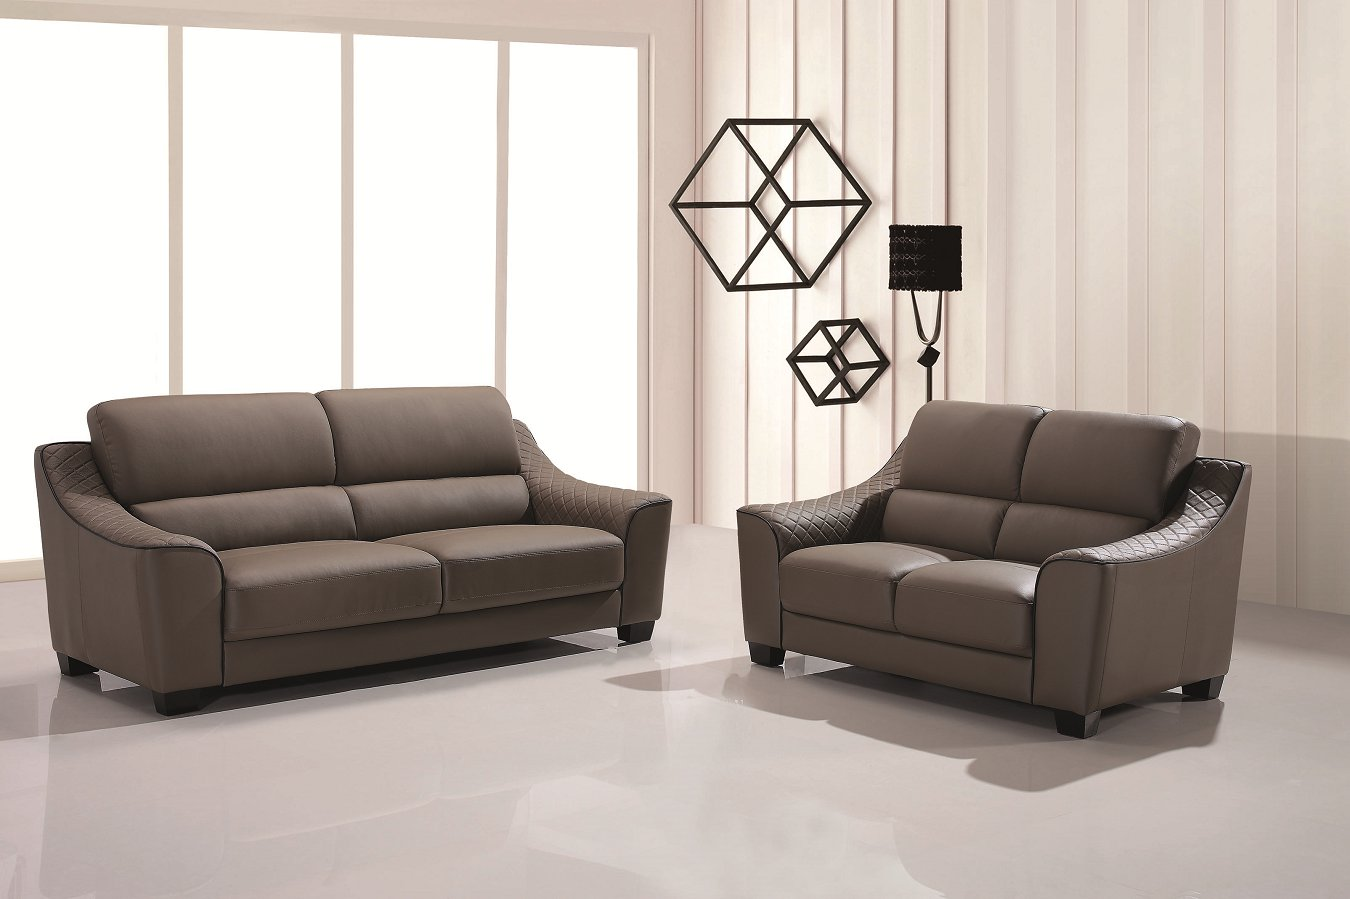 Modern Used Leather Sofa, Recliner Leather Sofa